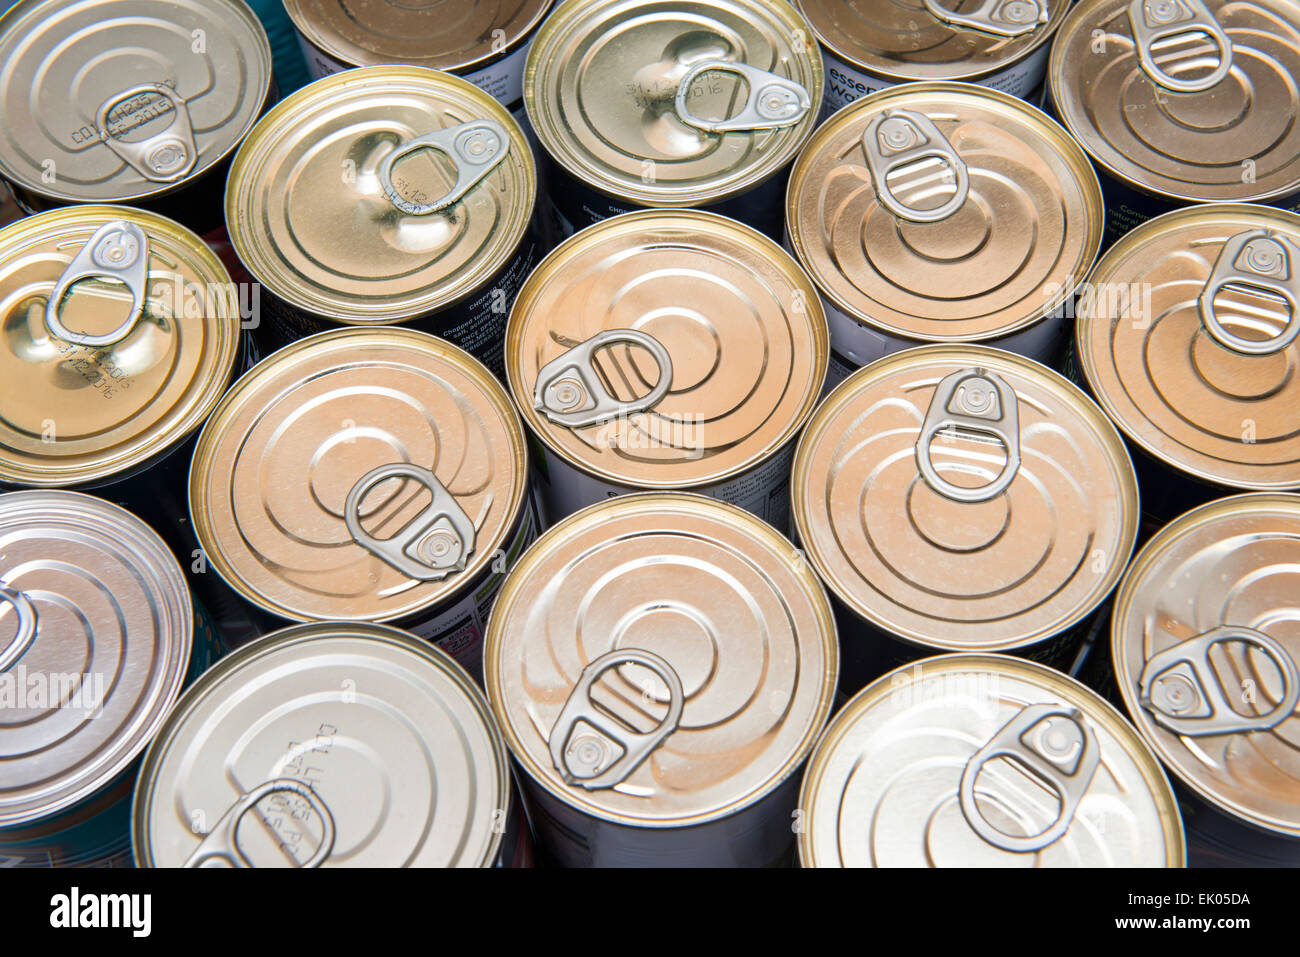 Cans of food in a kitchen drawer - Stock Image